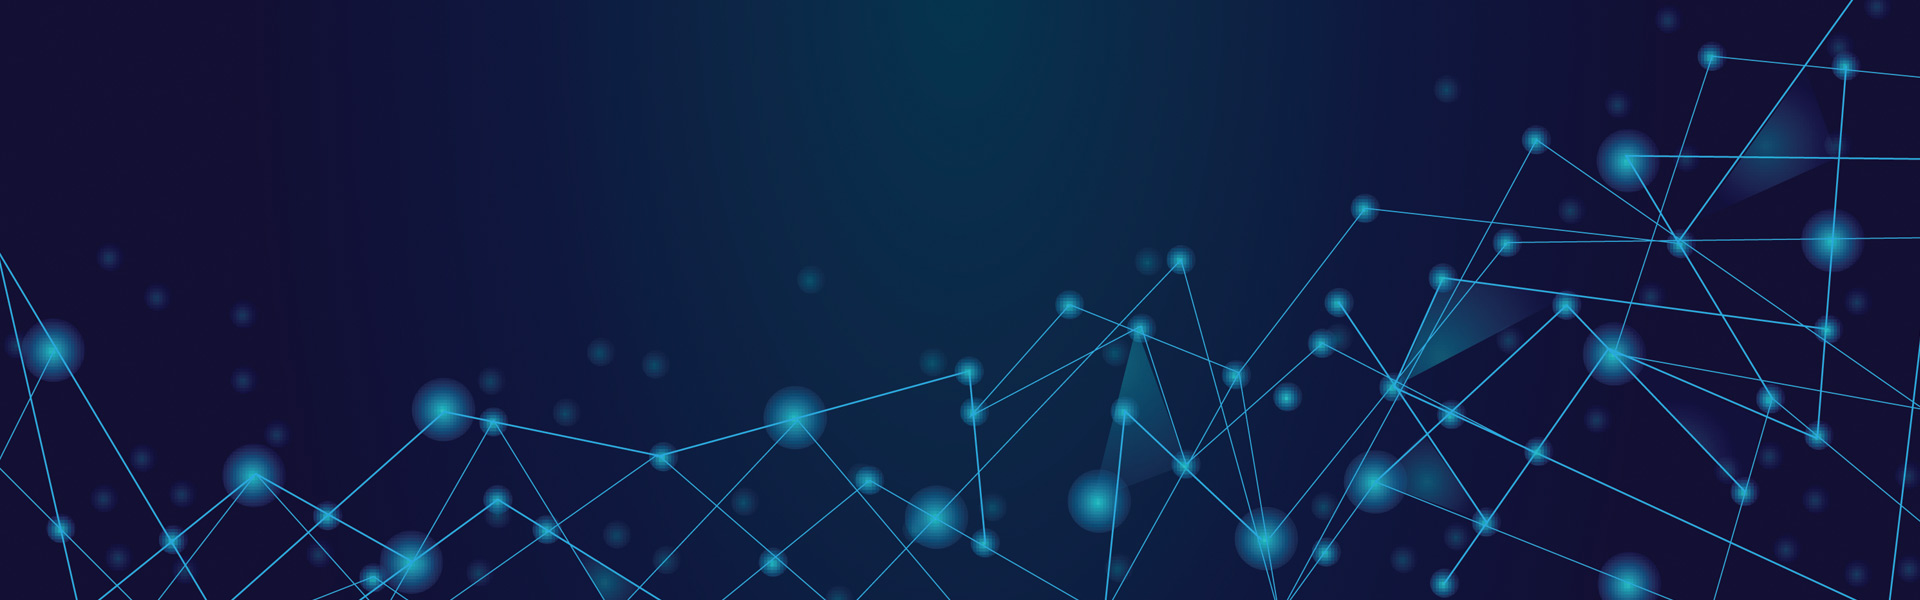 illustration of network dots on a blue background